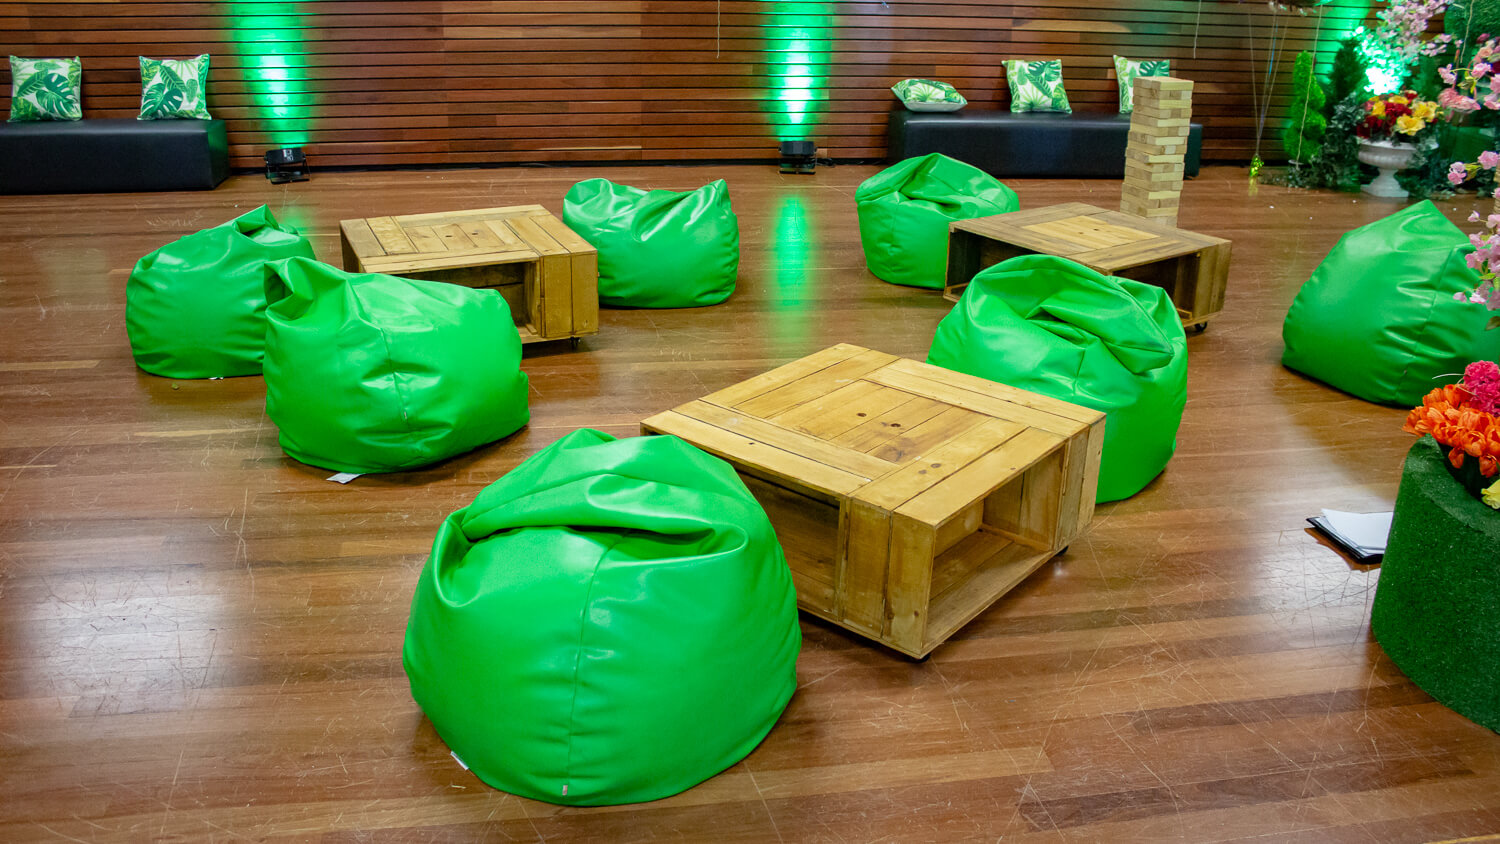 Green bean bag hire melbourne in enchanted forest setting